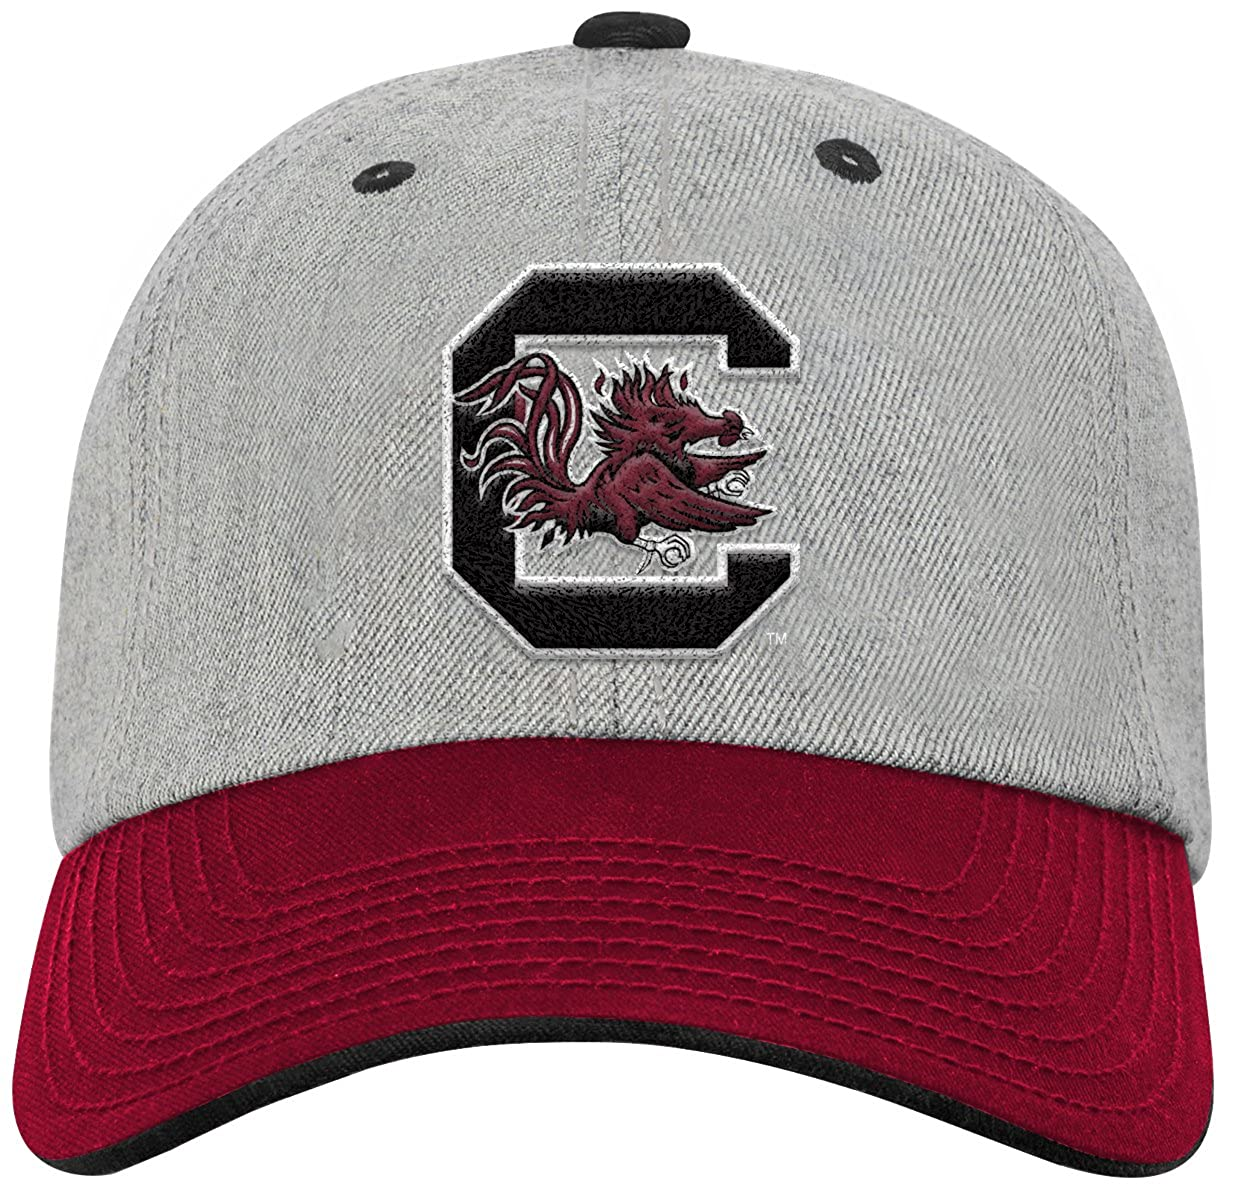 Youth One Size Team Color NCAA South Carolina Fighting Gamecocks Youth Outerstuff Chain Stitch Slouch Hat